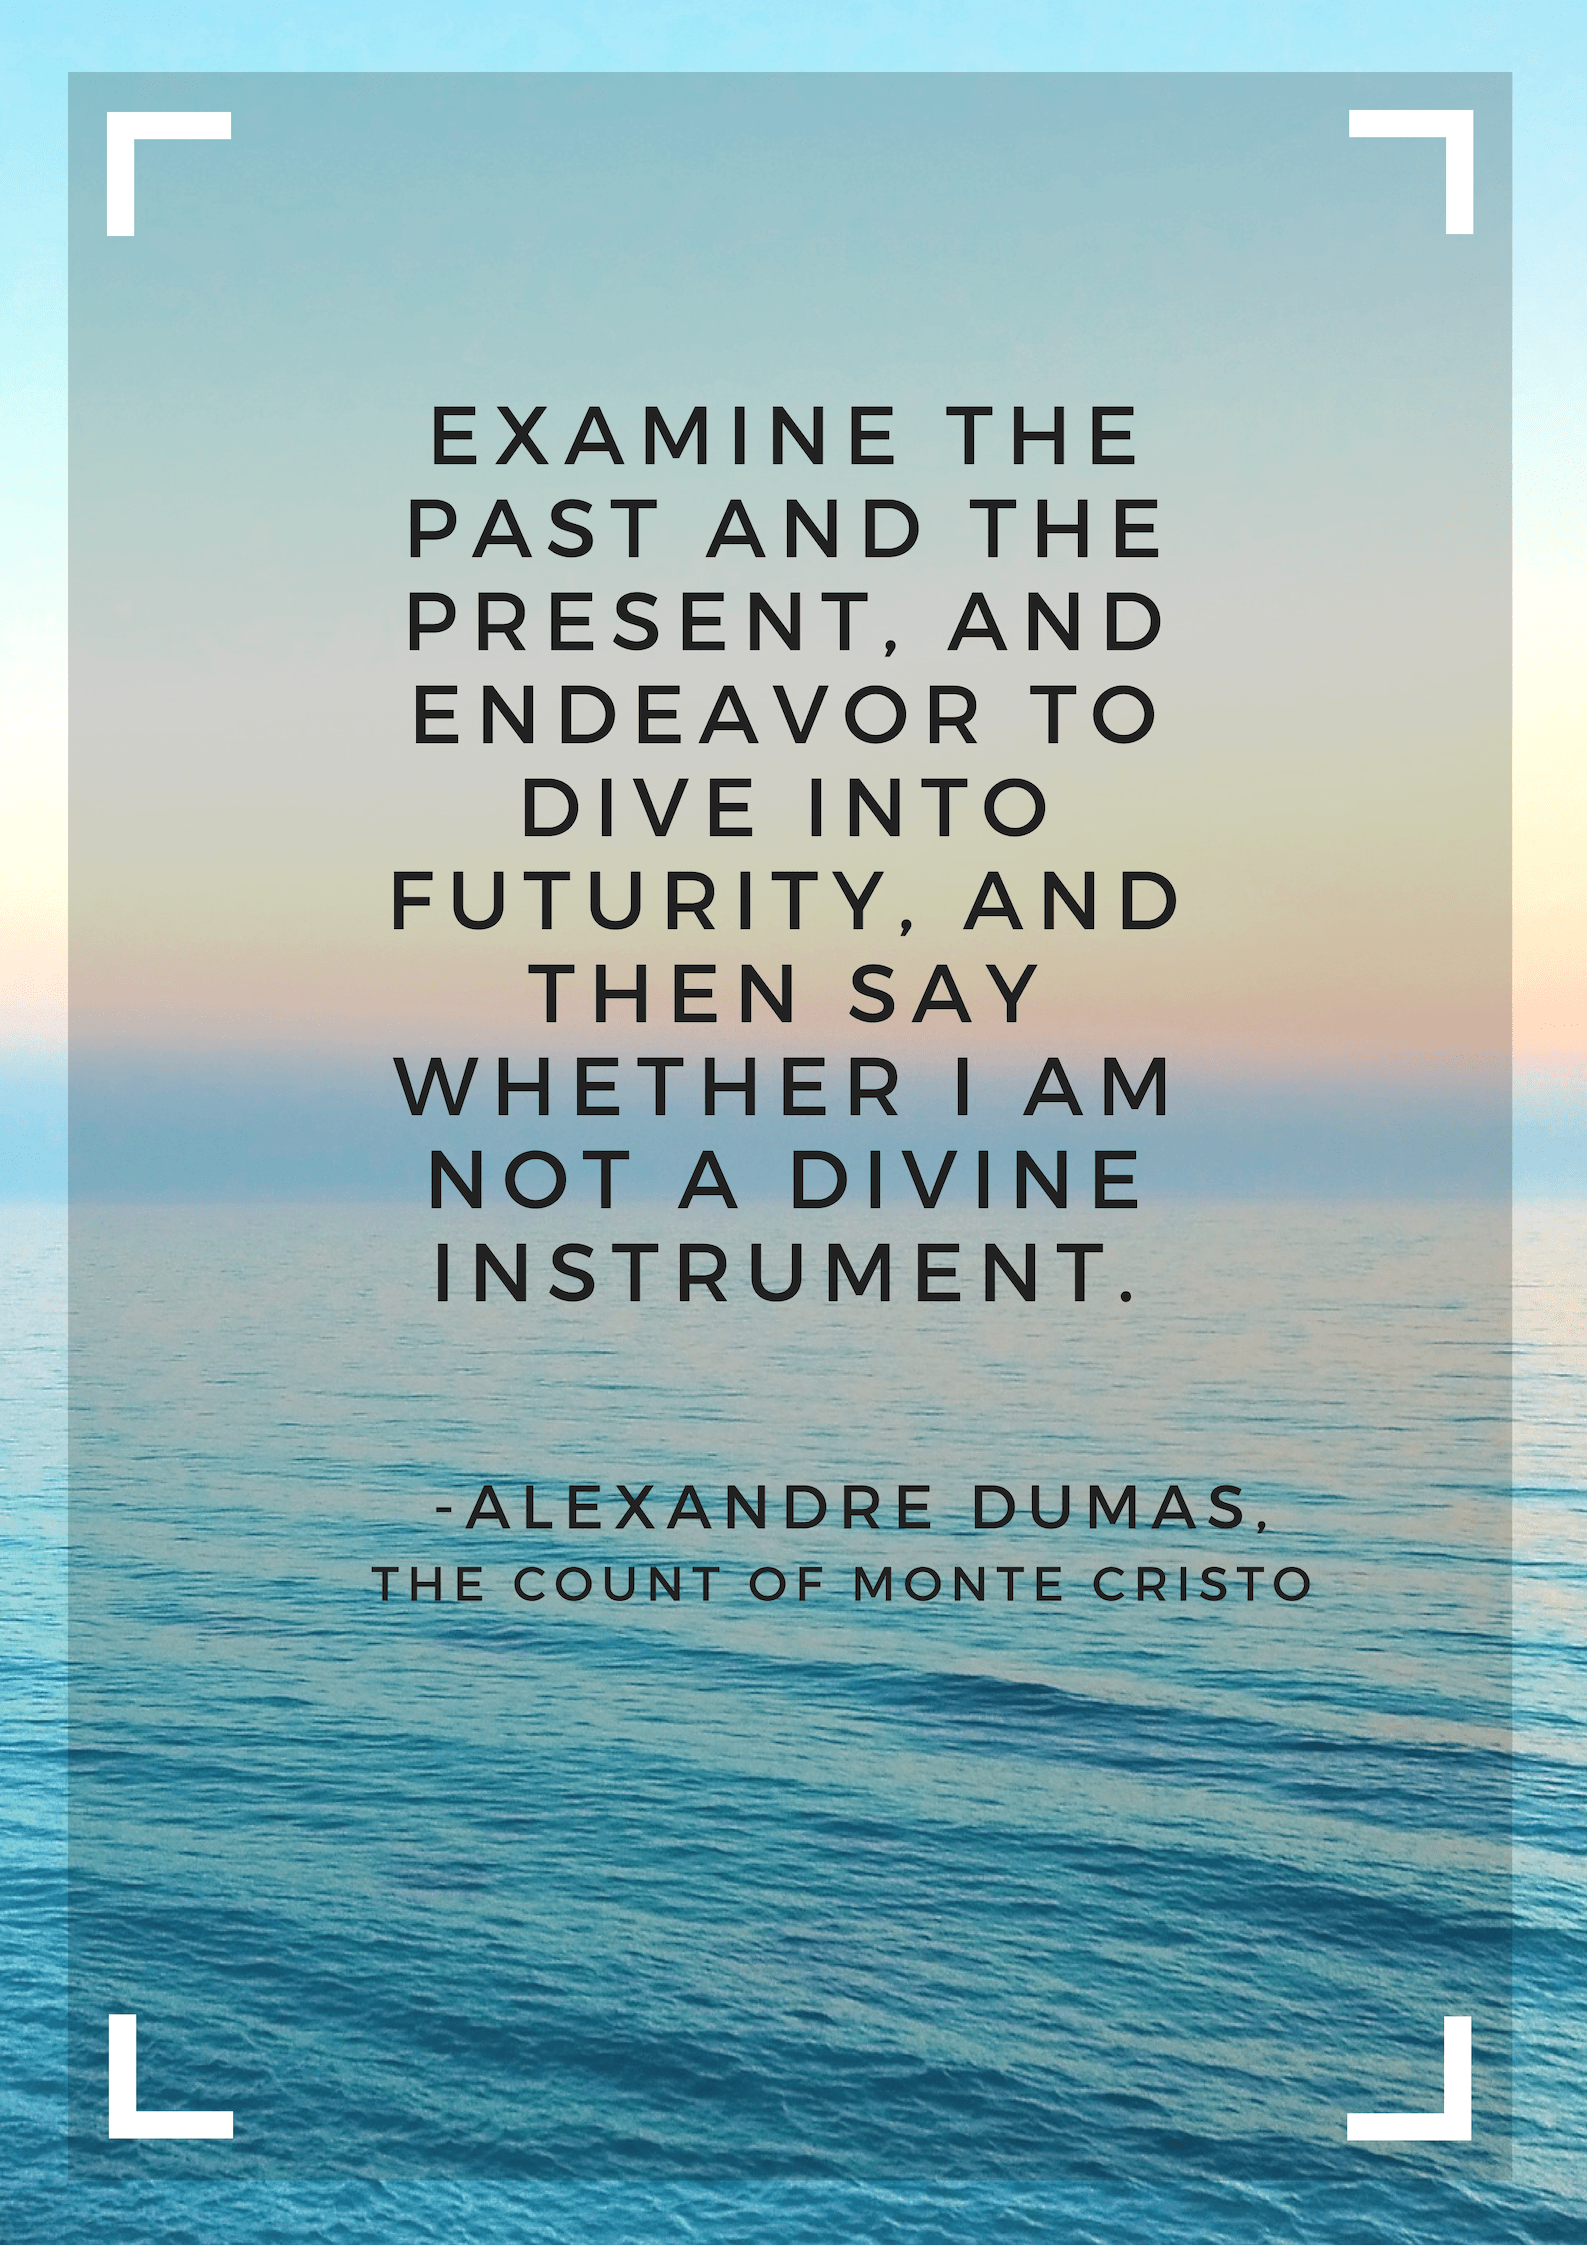 """Examine the past and the present…"" -Alexandre Dumas, The Count of Monte Cristo [1587 x 2245]"